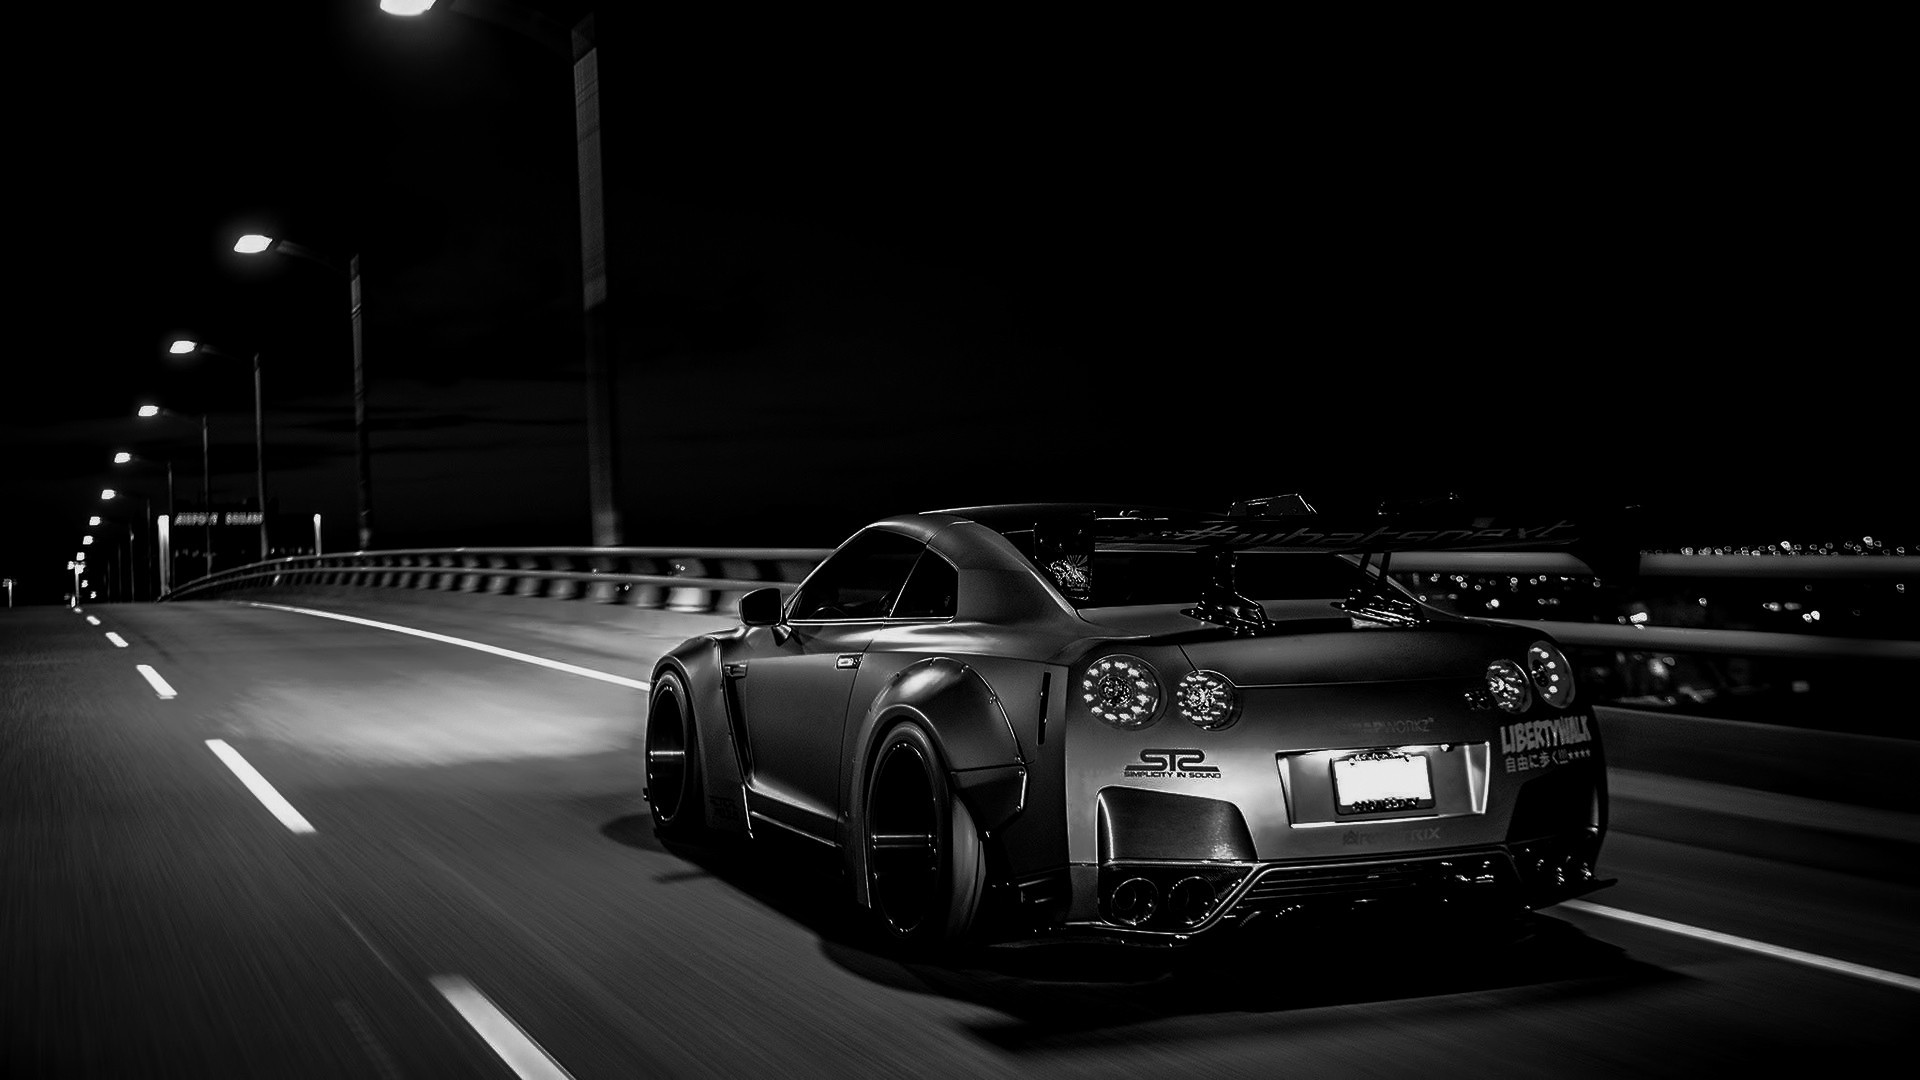 1920x1080 General  tuning Nissan Skyline GT-R R35 Liberty Walk Nissan GTR car